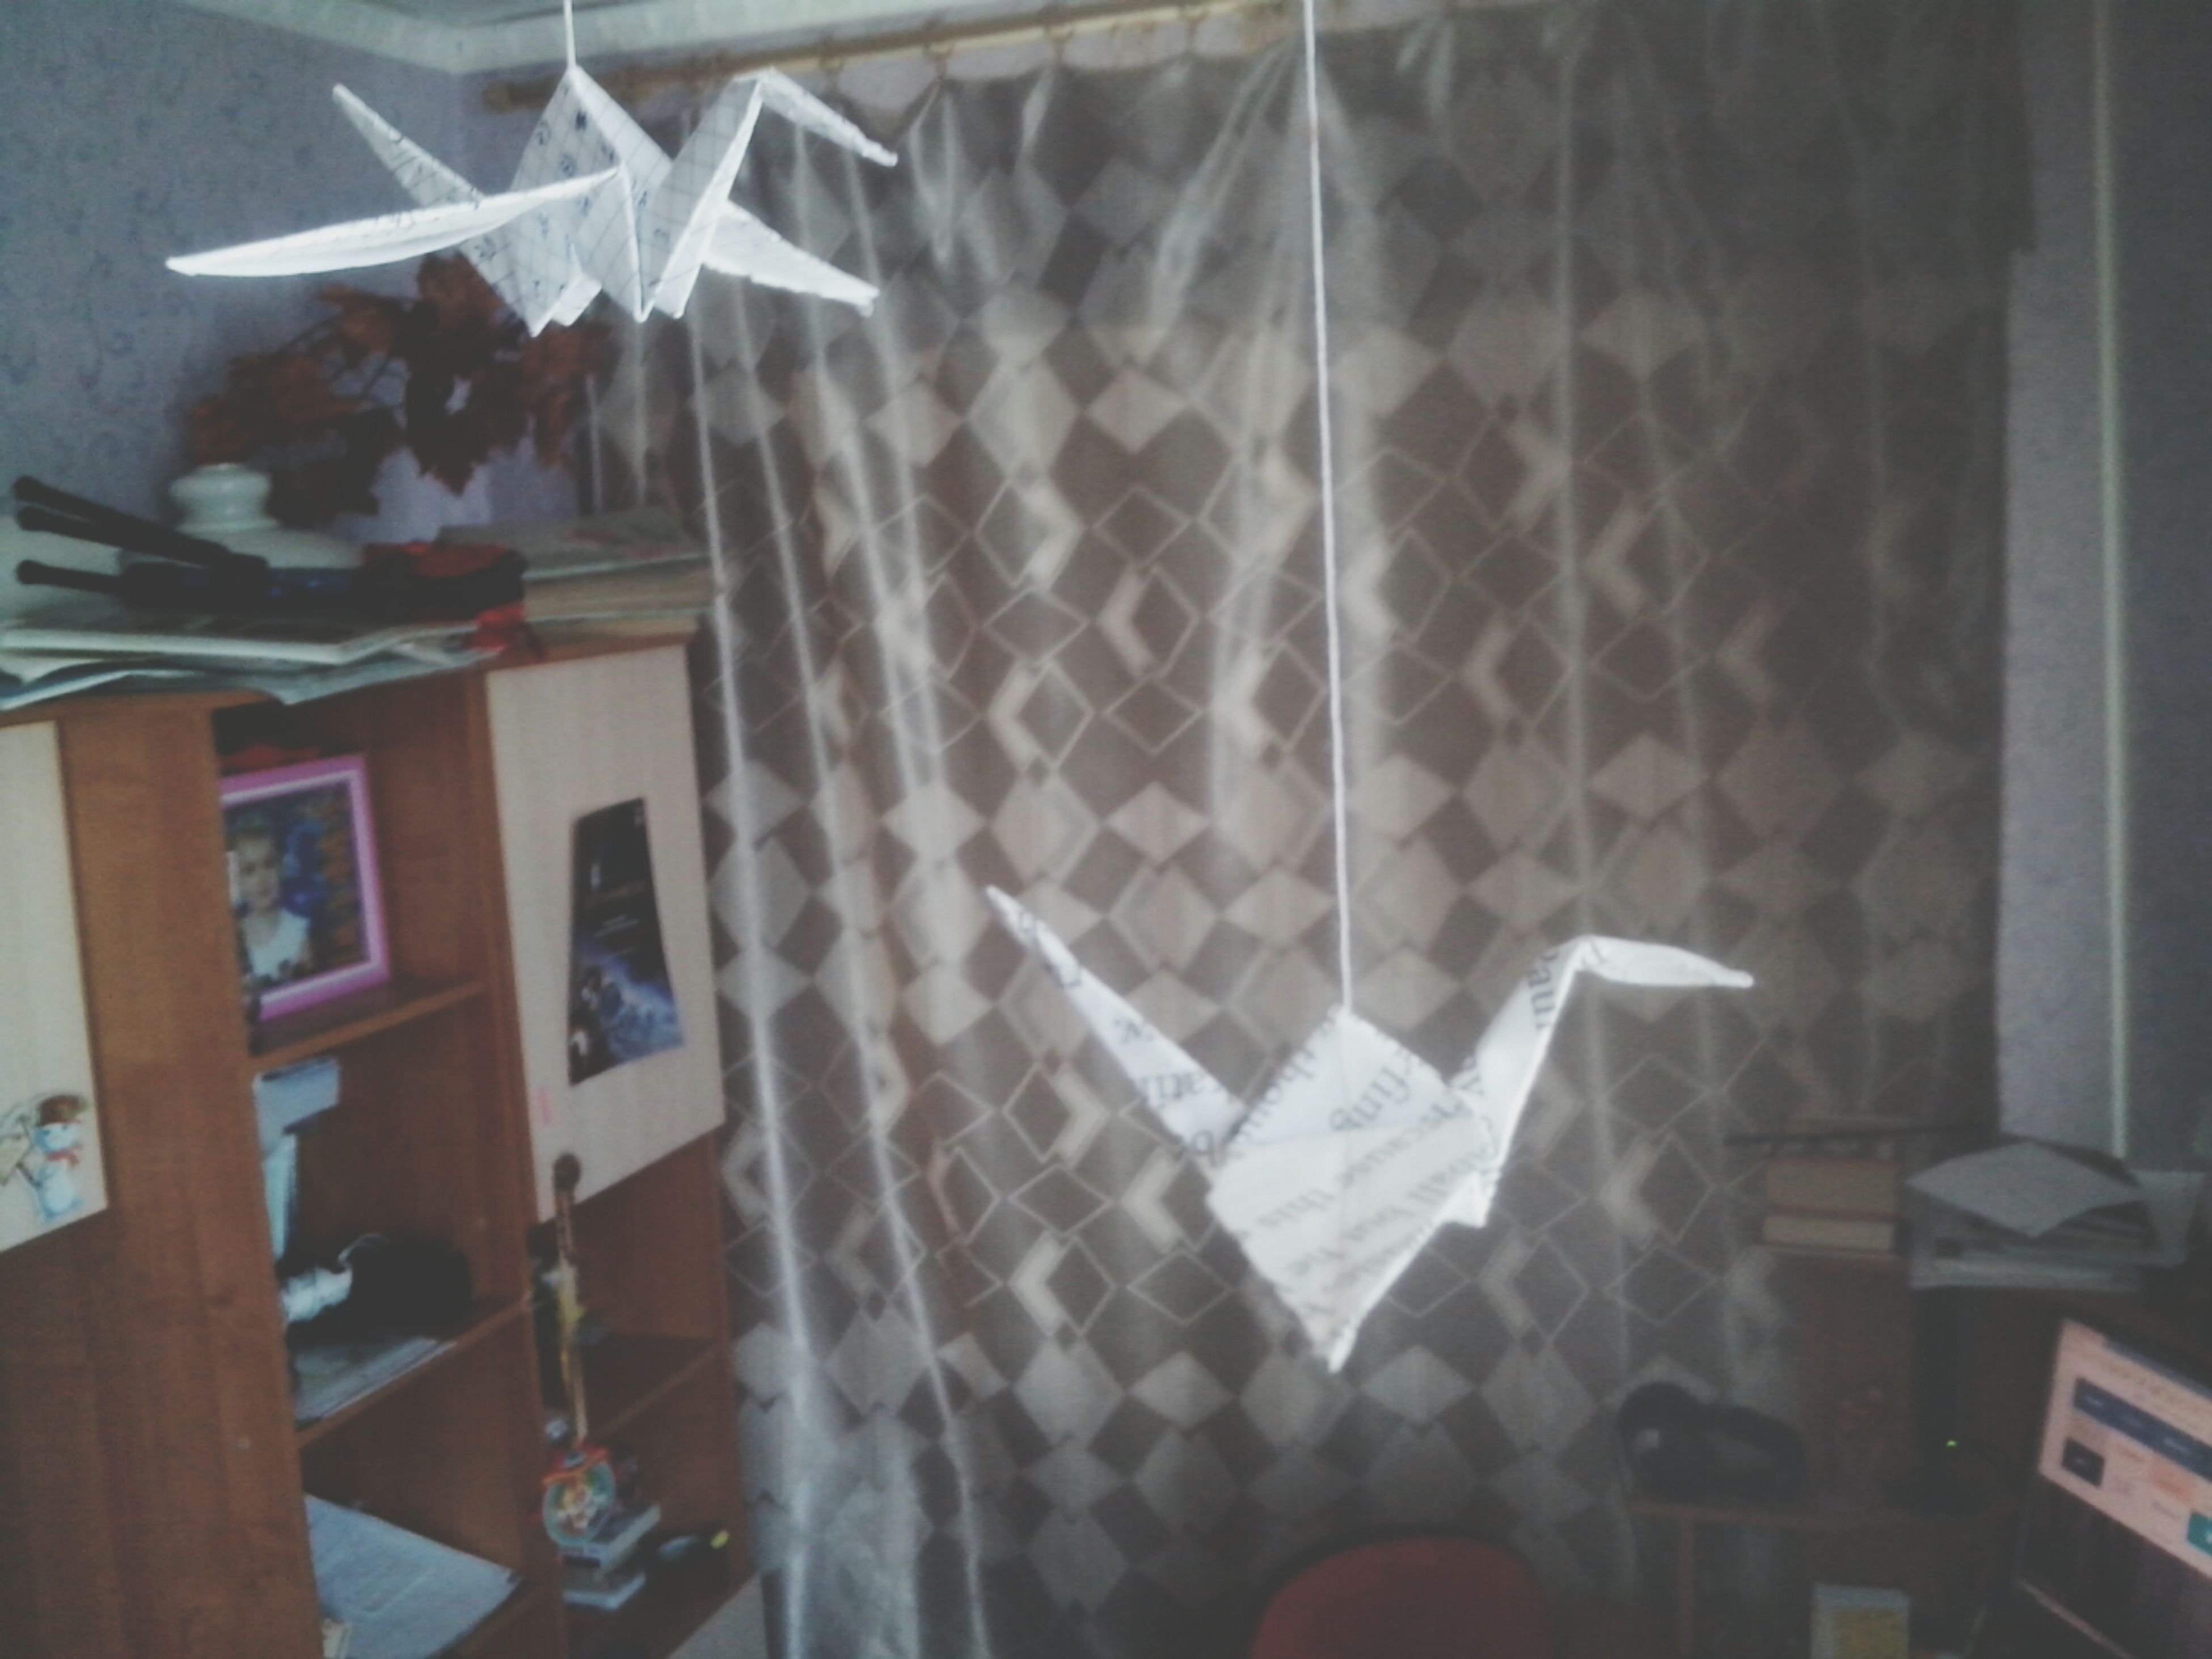 indoors, window, glass - material, paper, hanging, home interior, table, transparent, wall - building feature, day, no people, close-up, architecture, built structure, curtain, textile, part of, high angle view, still life, fabric